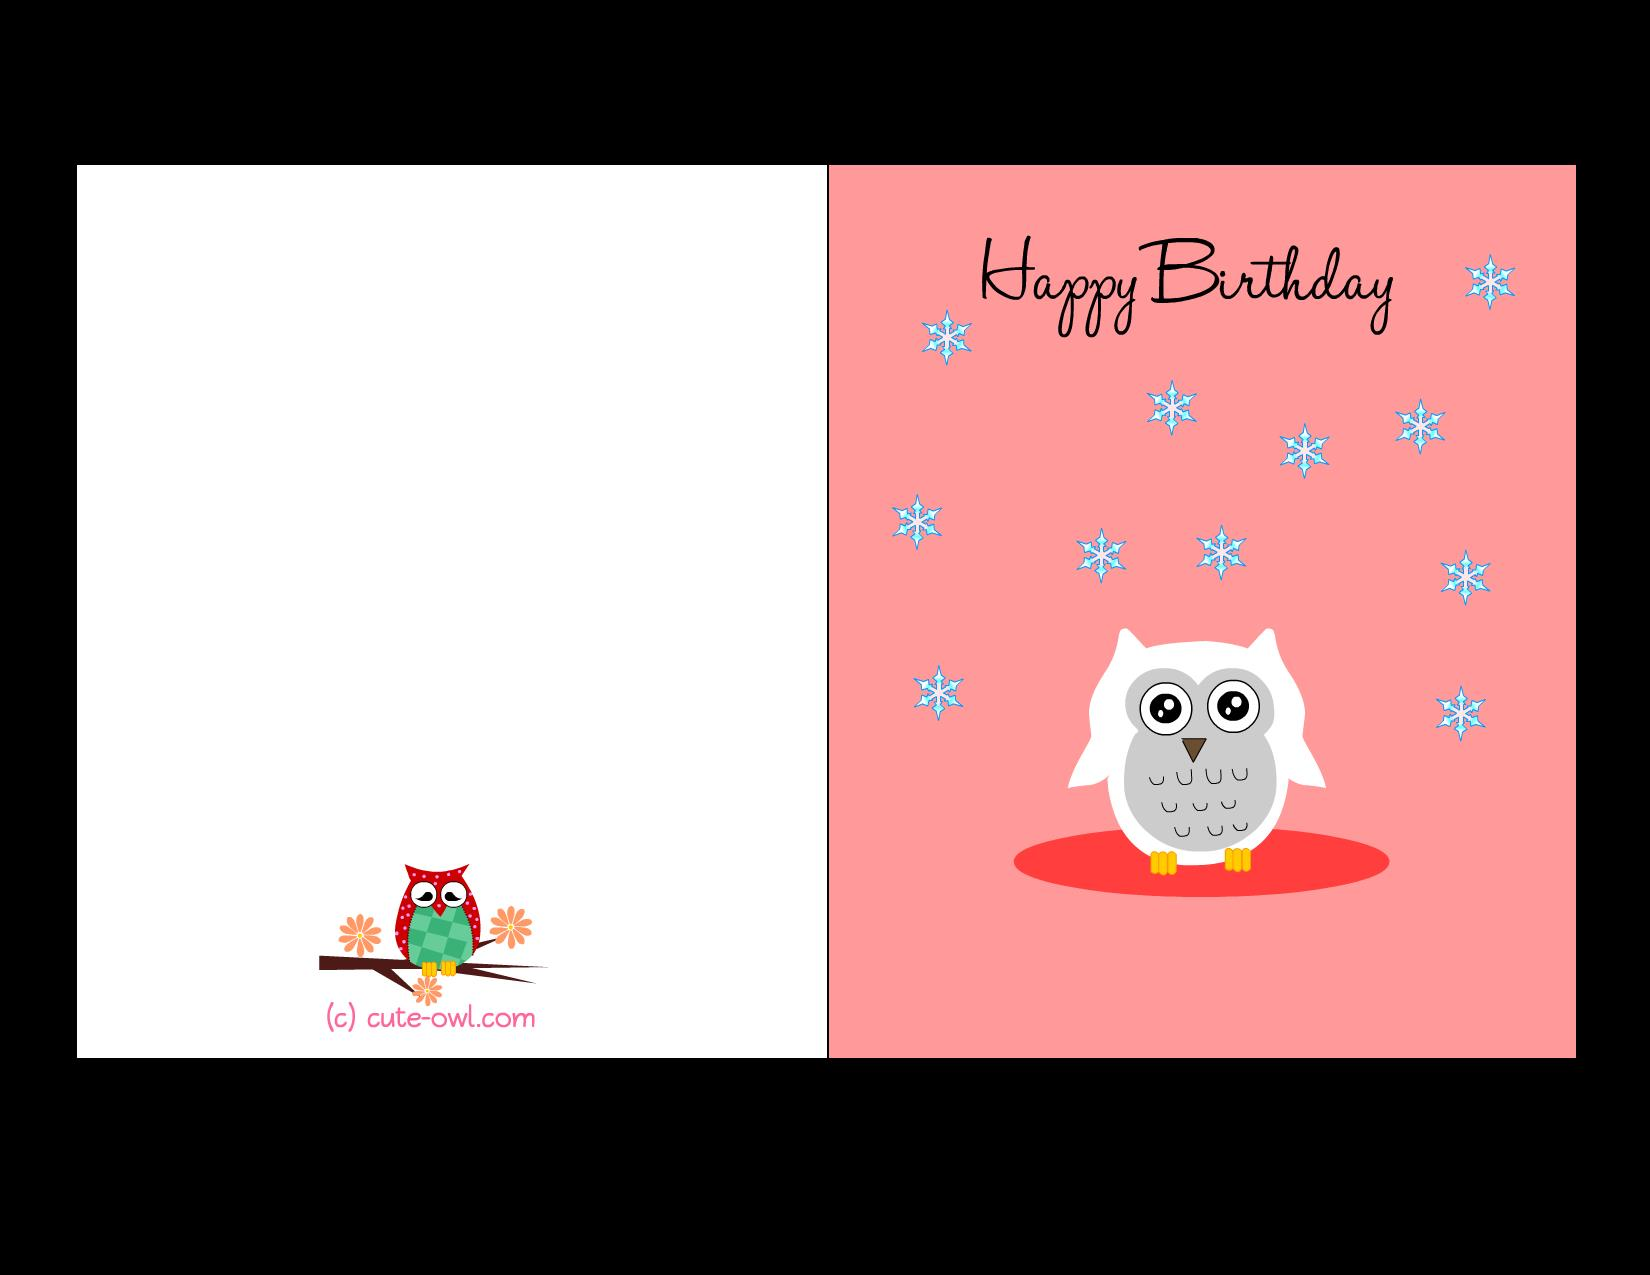 birthday card design printable ; cute-snowy-owl-happy-birthday-card-soft-pink-background-white-owl-winter-snow-items-decorations-printable-birthday-card